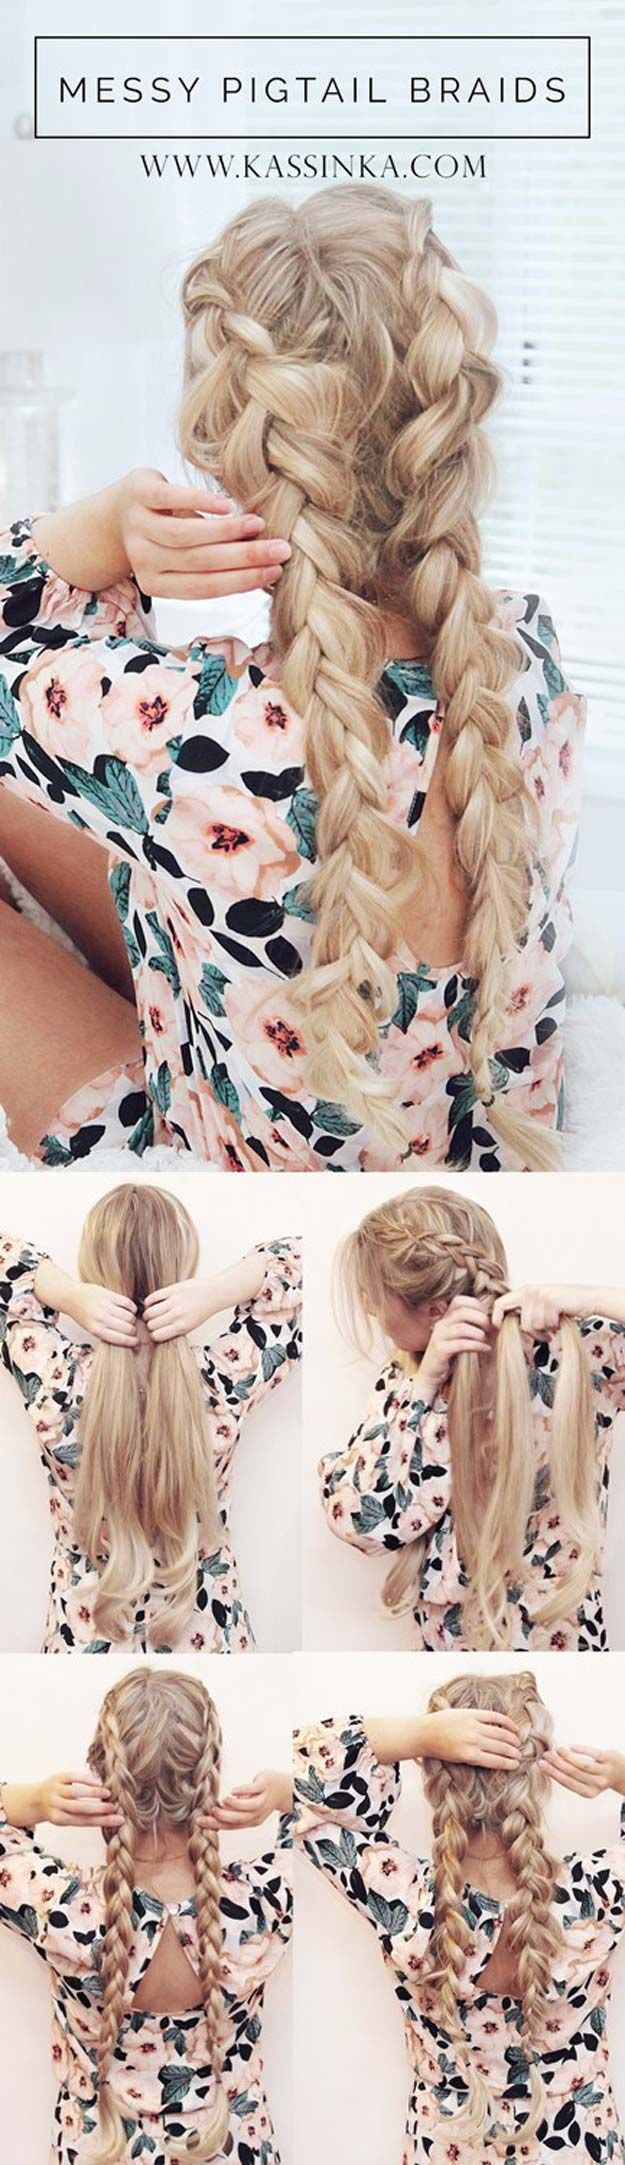 We have looked everywhere to find the best festival hair tutorials, styles and i...